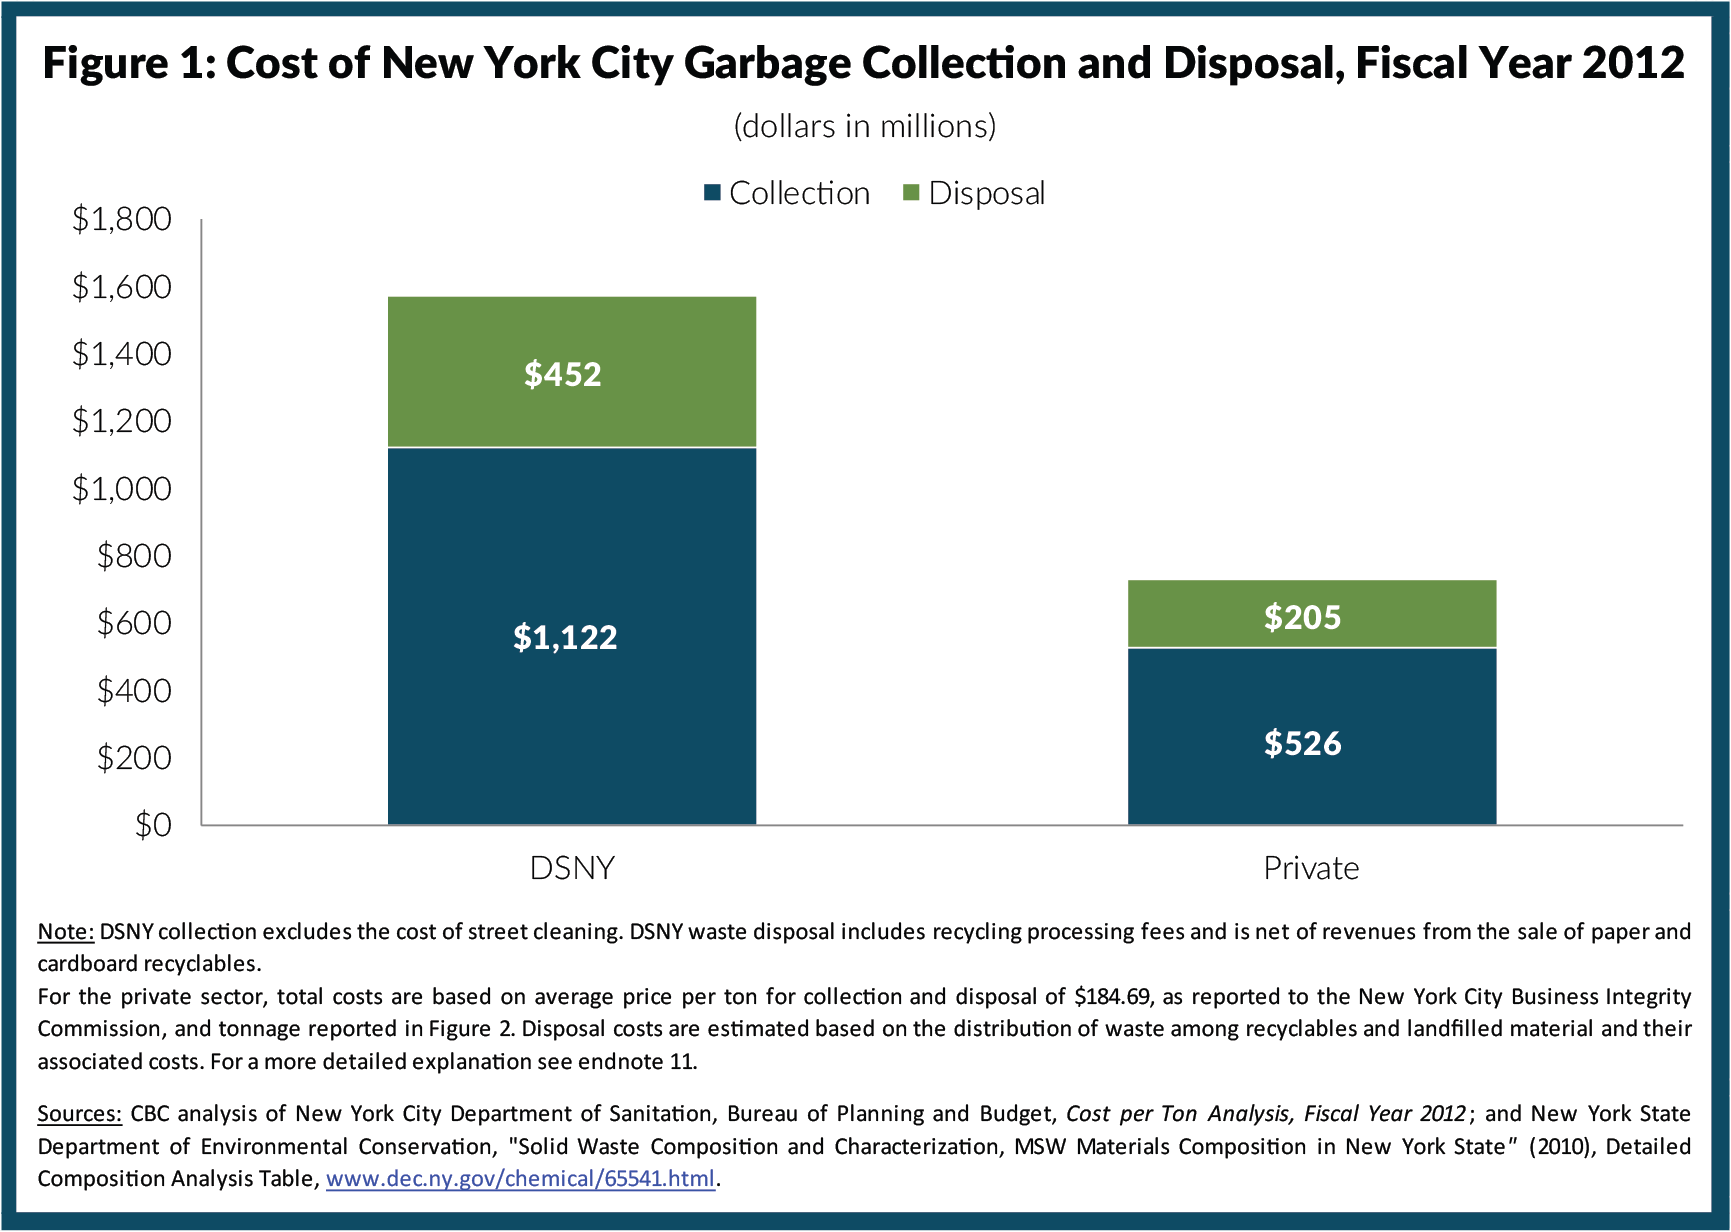 Figure 1: Cost of New York City Garbage Collection & Disposal, Fiscal Year 2012